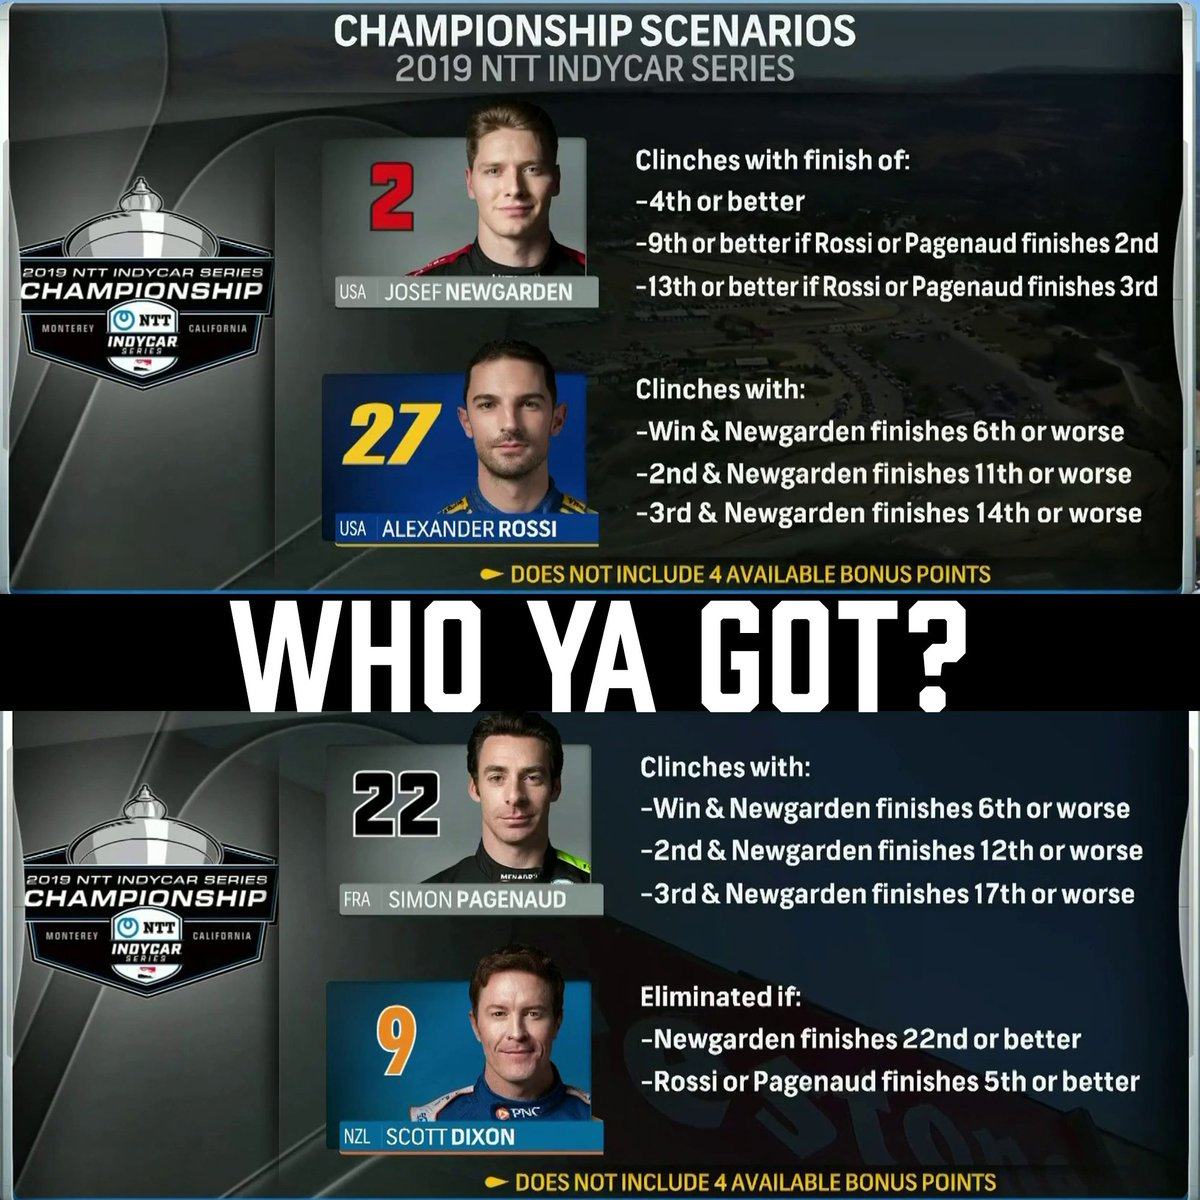 Four drivers can win the @IndyCar Championship today on @NBC. Heres how @JosefNewgarden, @AlexanderRossi, @SimonPagenaud, or @ScottDixon9 could win the Astor Cup at @weathertechrcwy. #FirestoneGP